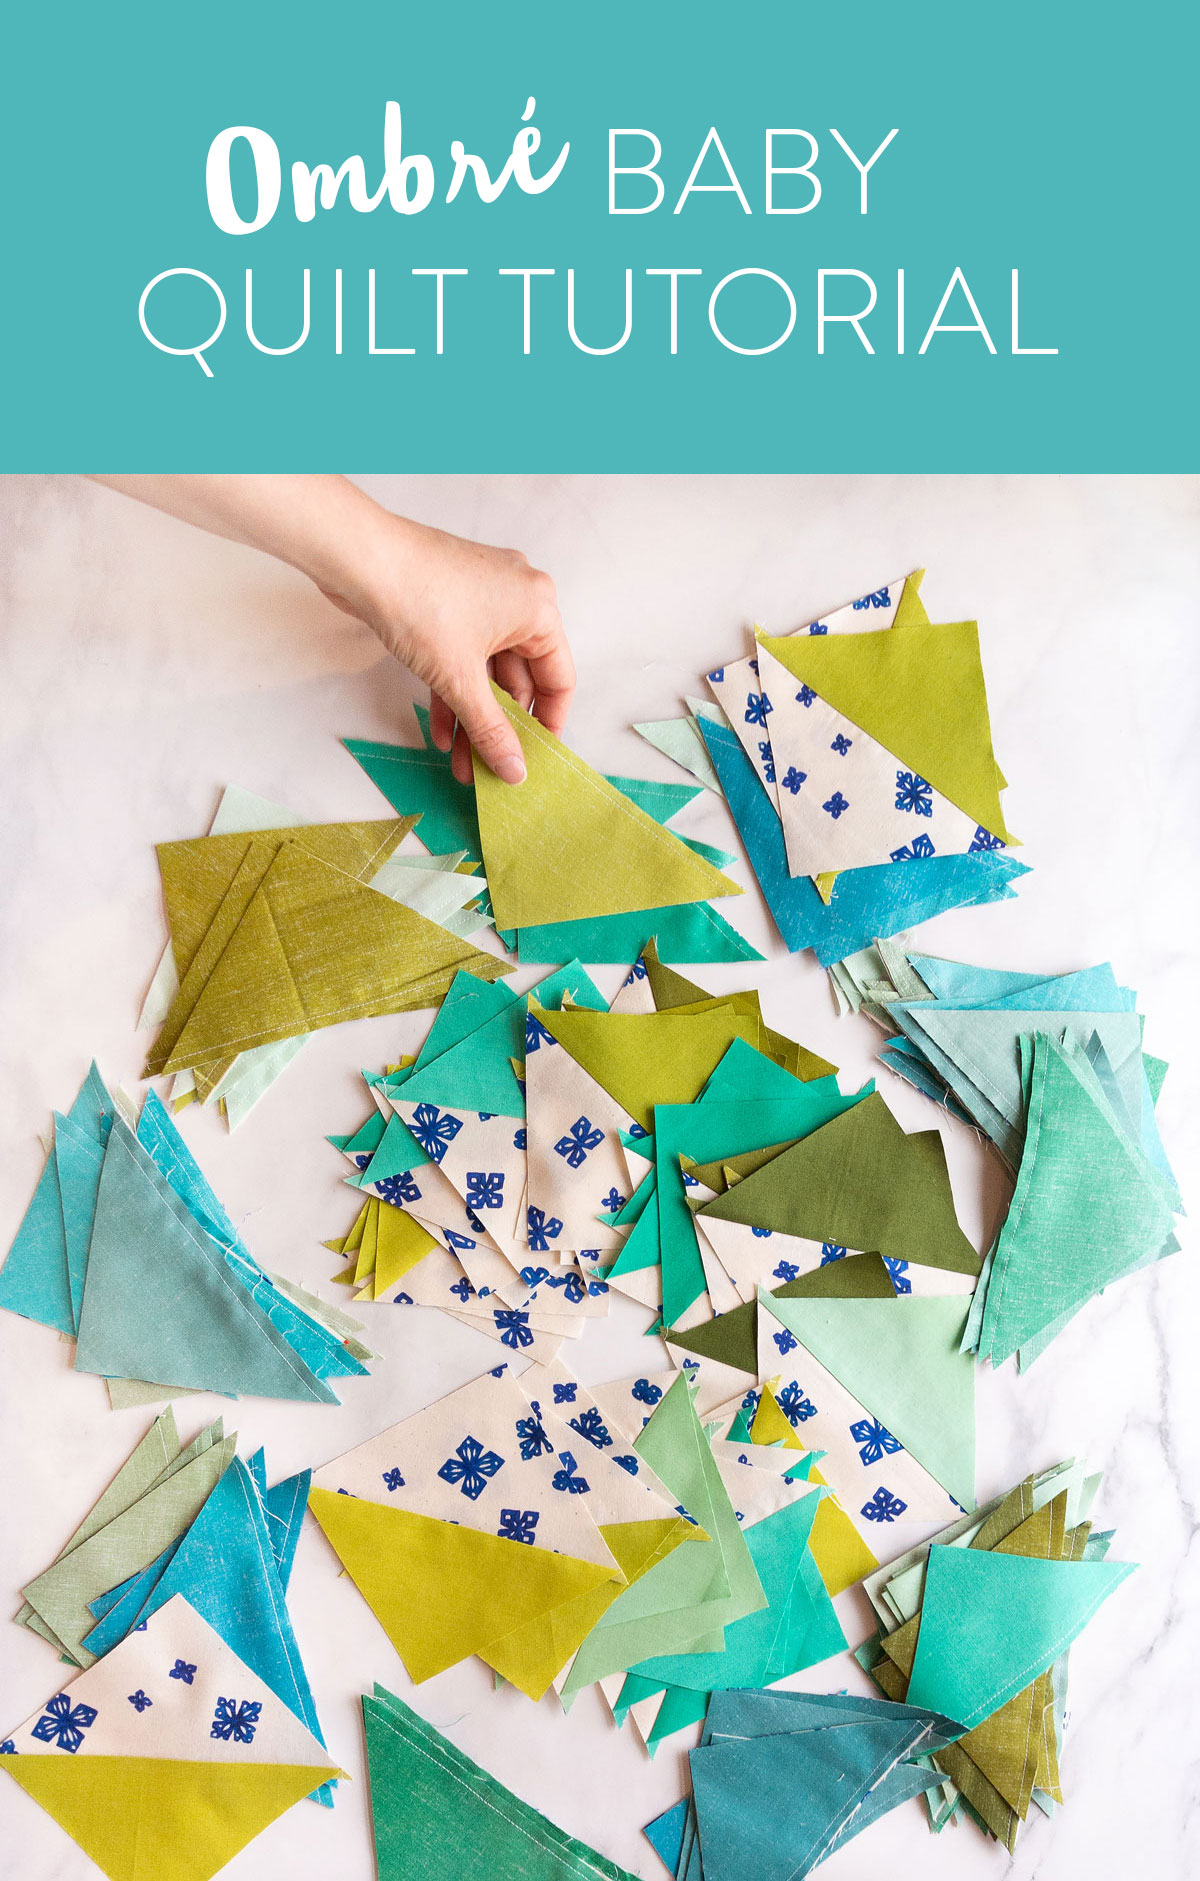 Make a Triangle Jitters quilt with 8 fat quarters! This is a beginner-friendly half square triangle pattern. Discover how to achieve this ombré effect with the exact fabrics I used! Suzy Quilts - https://suzyquilts.com/make-a-triangle-jitters-quilt-with-8-fat-quarters